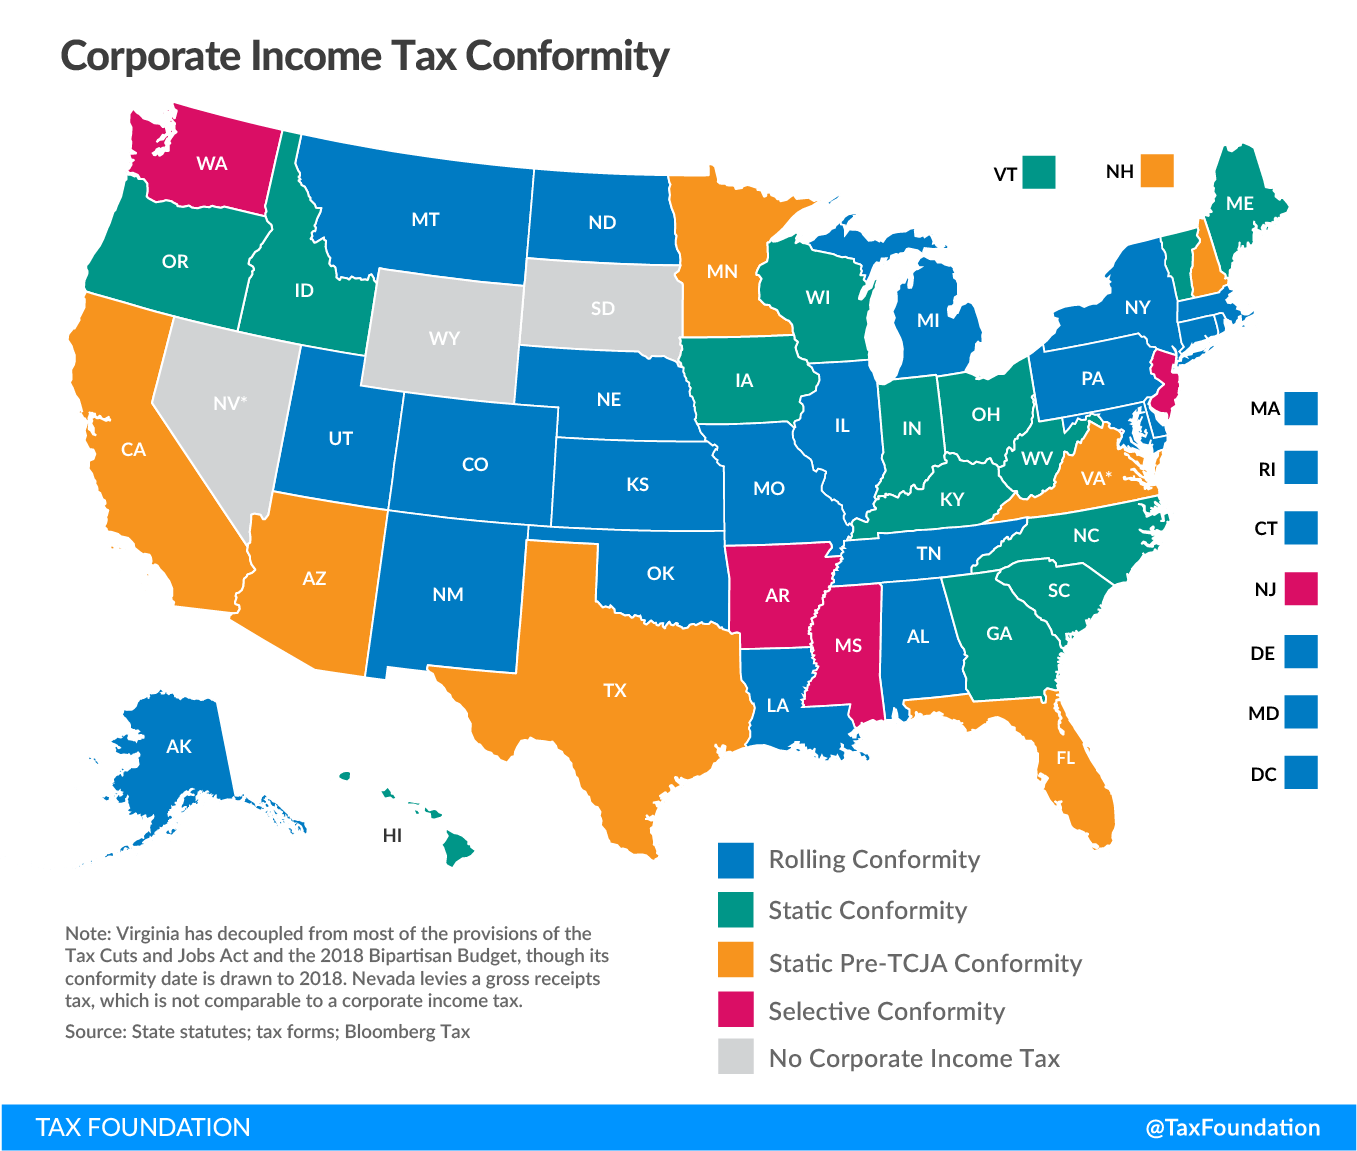 Corporate Income Tax Conformity